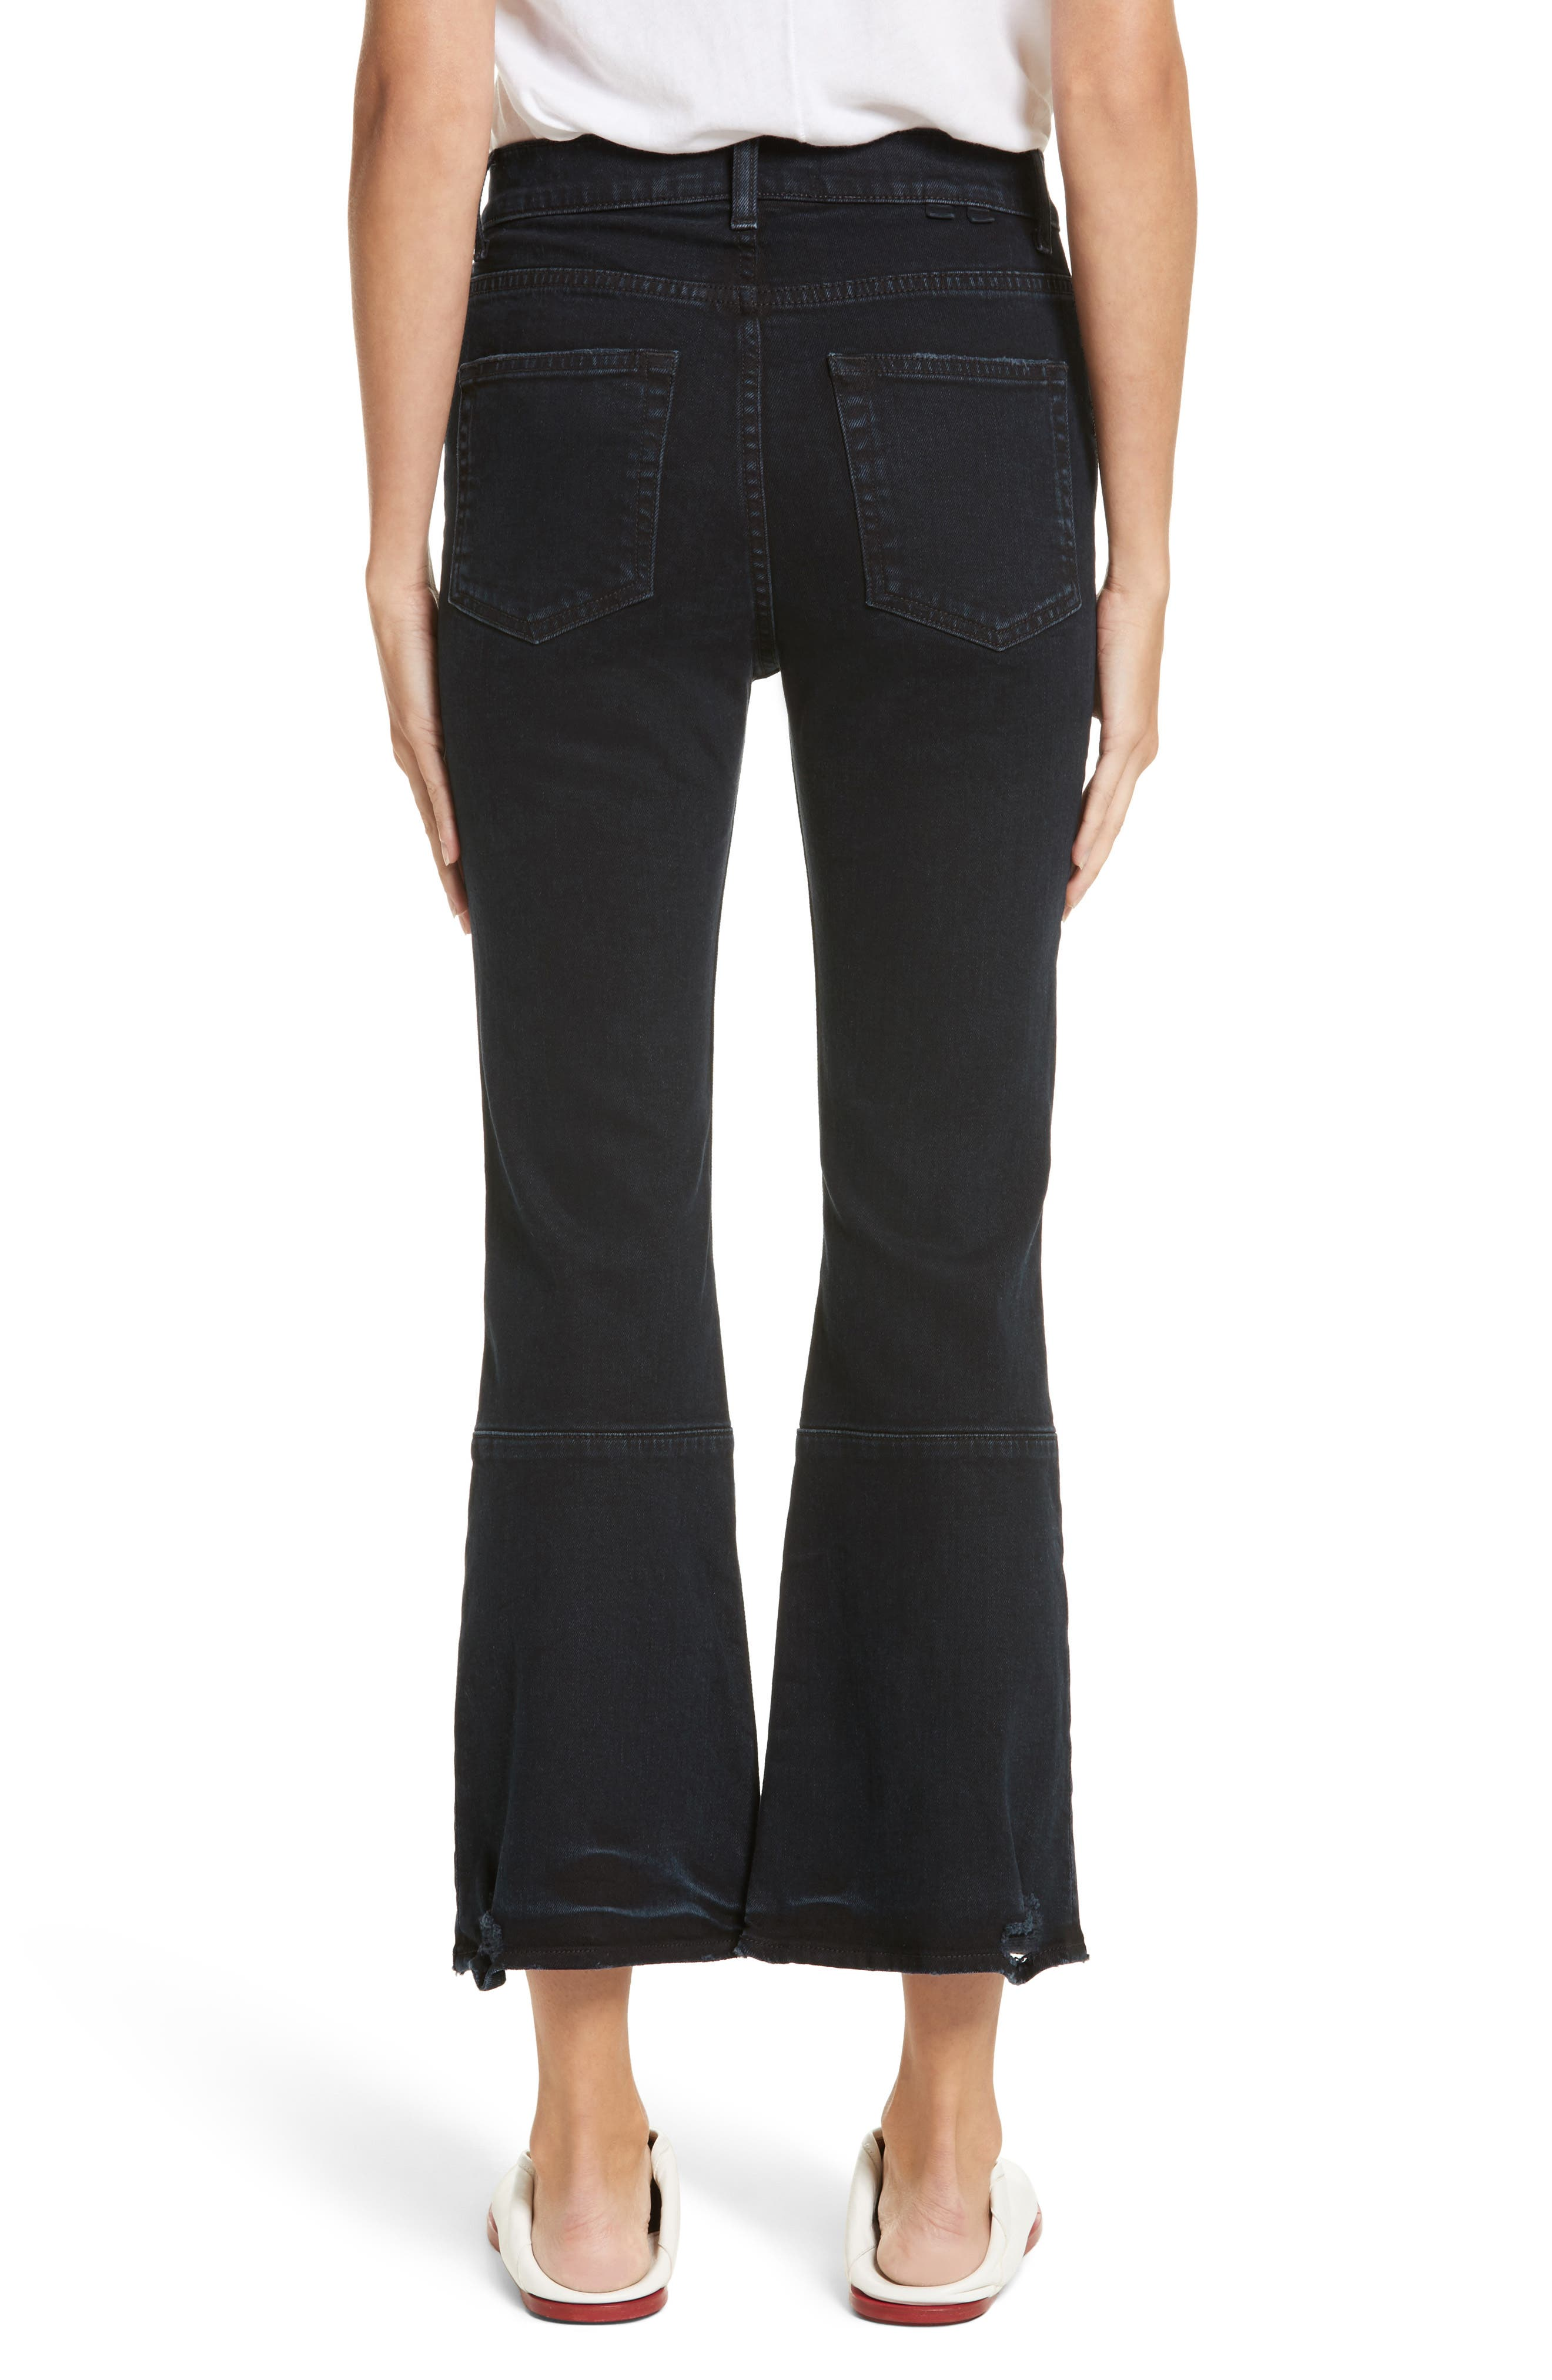 PSWL Crop Kick Flare Jeans,                             Alternate thumbnail 2, color,                             013